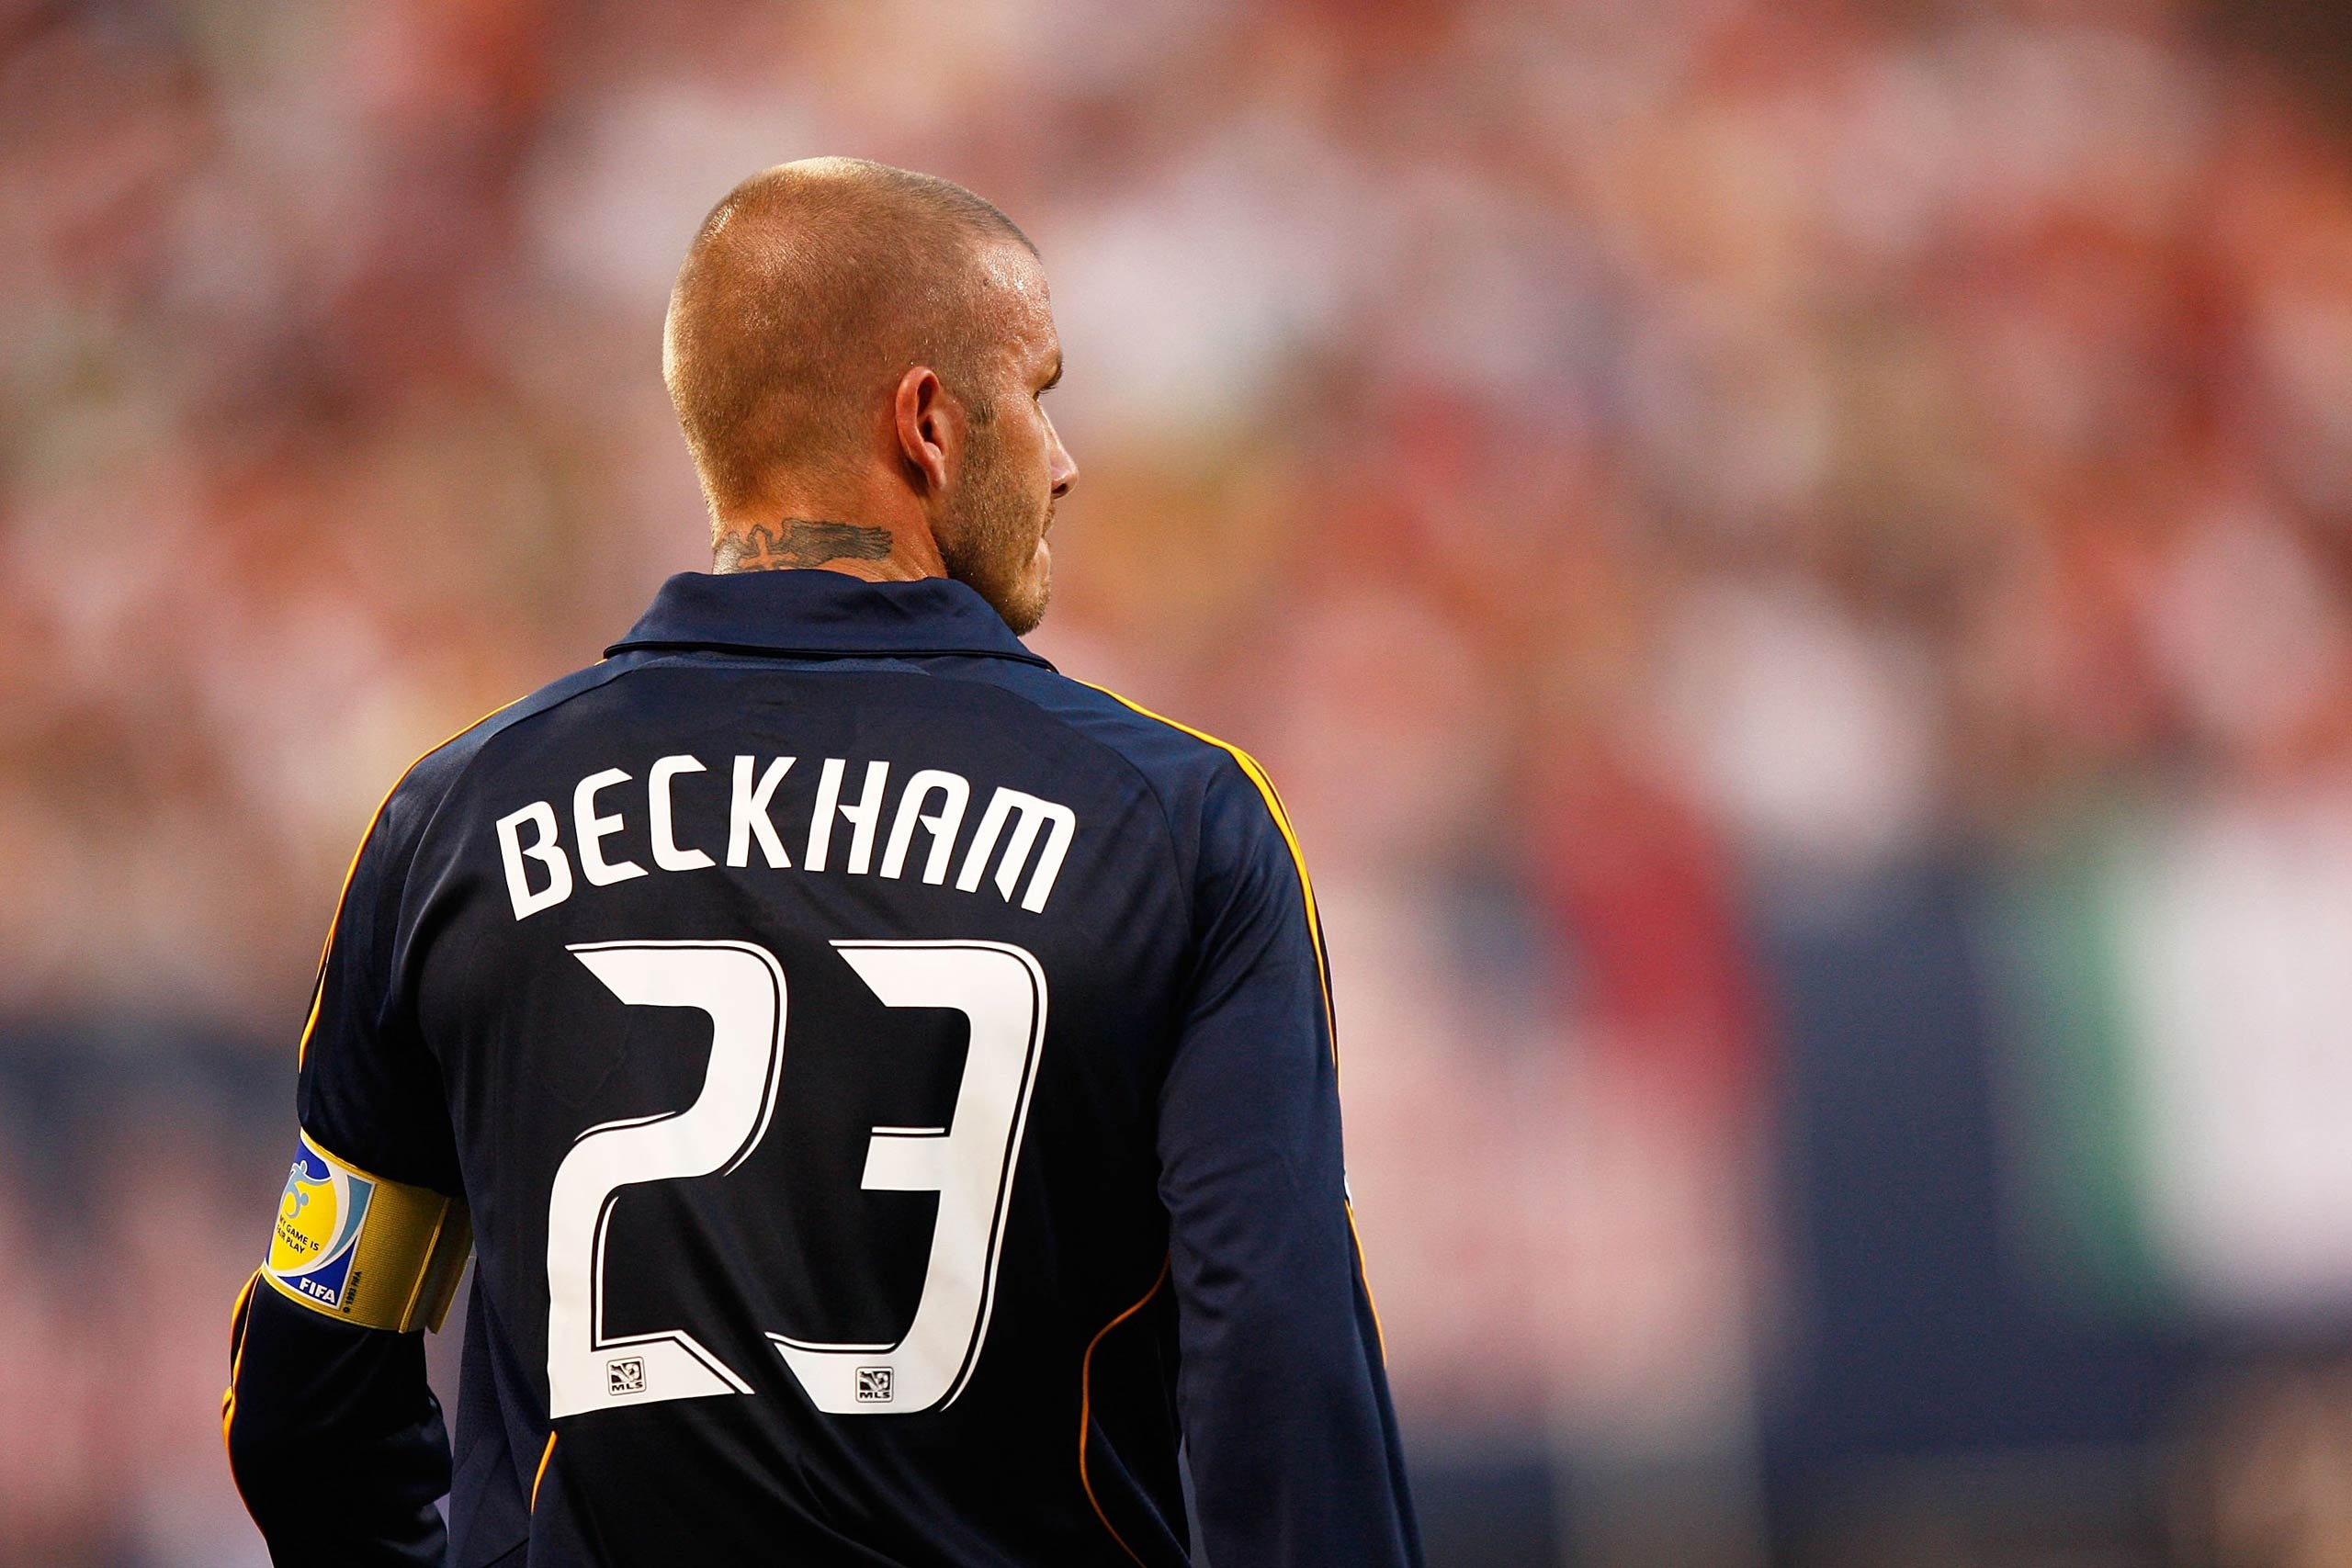 David Beckham of the LA Galaxy plays against the New York Red Bulls at Giants Stadium in the Meadowlands in East Rutherford, NJ in 2008.